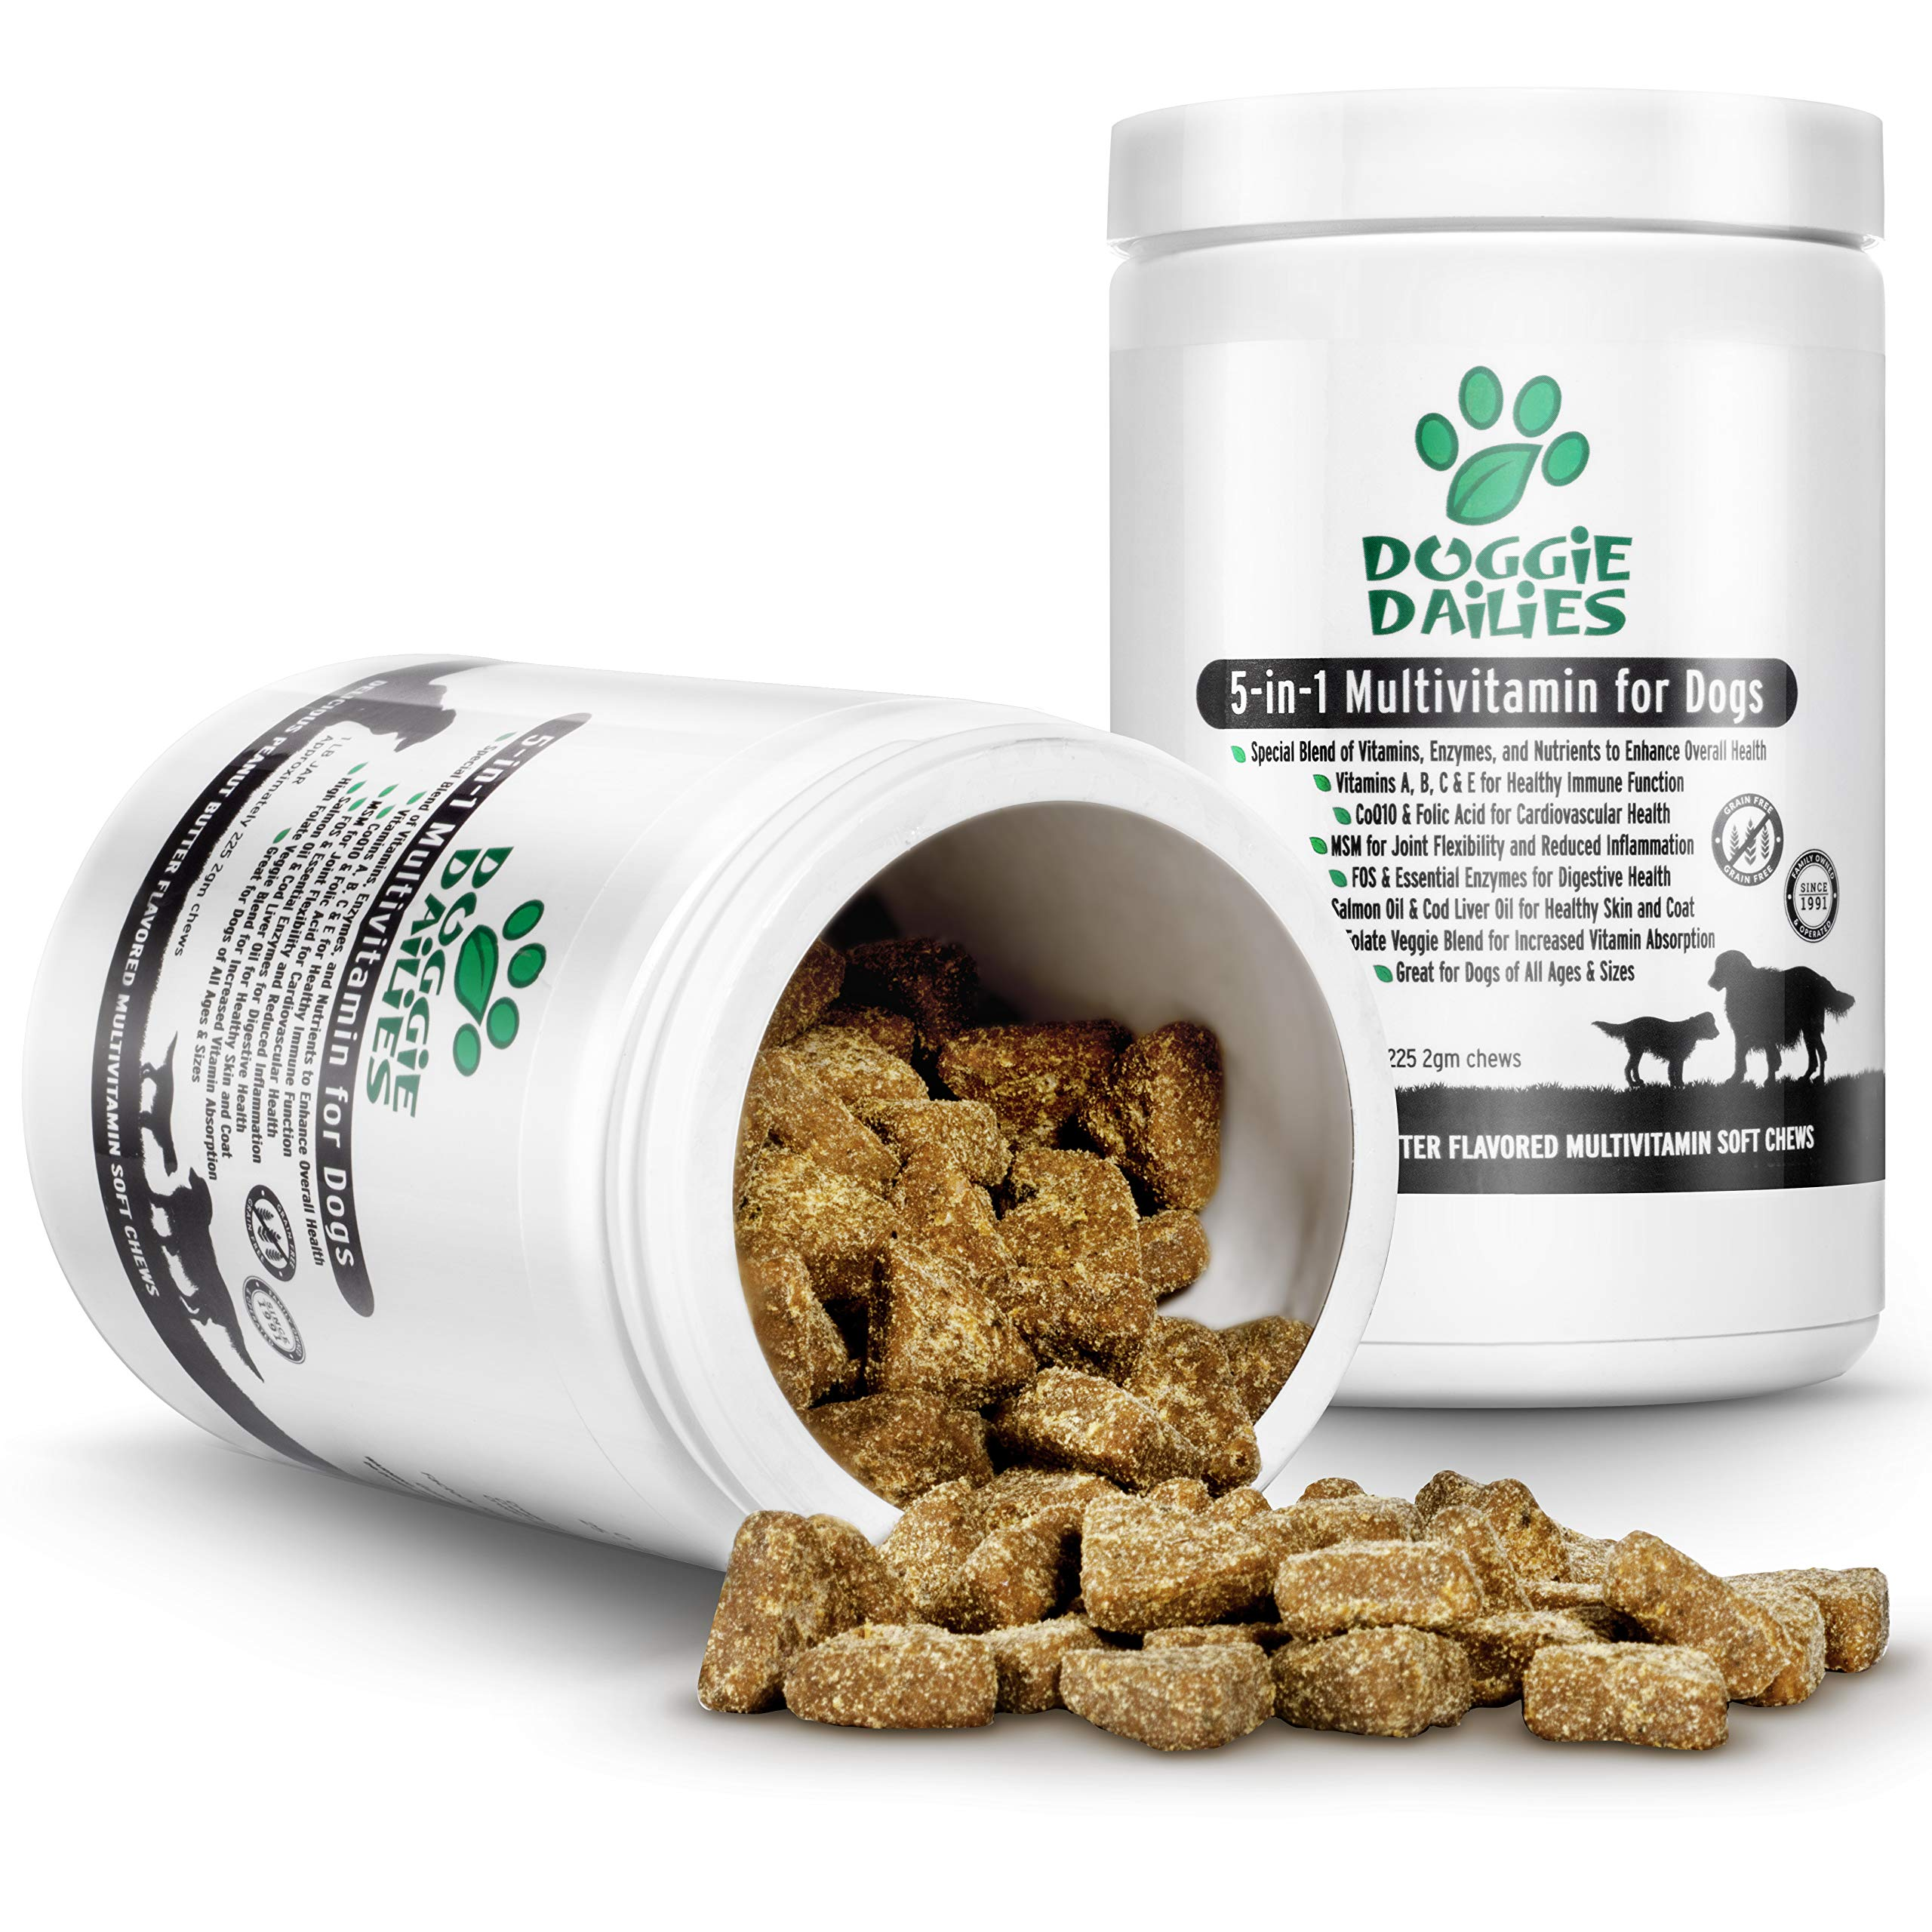 Doggie Dailies 5 in 1 Multivitamin for Dogs, 225 Soft Chews, Grain Free Dog Multivitamin for Skin and Coat Health, Joint Health, Improved Digestion, Heart Health and Enhanced Immunity, Made in the USA by Doggie Dailies